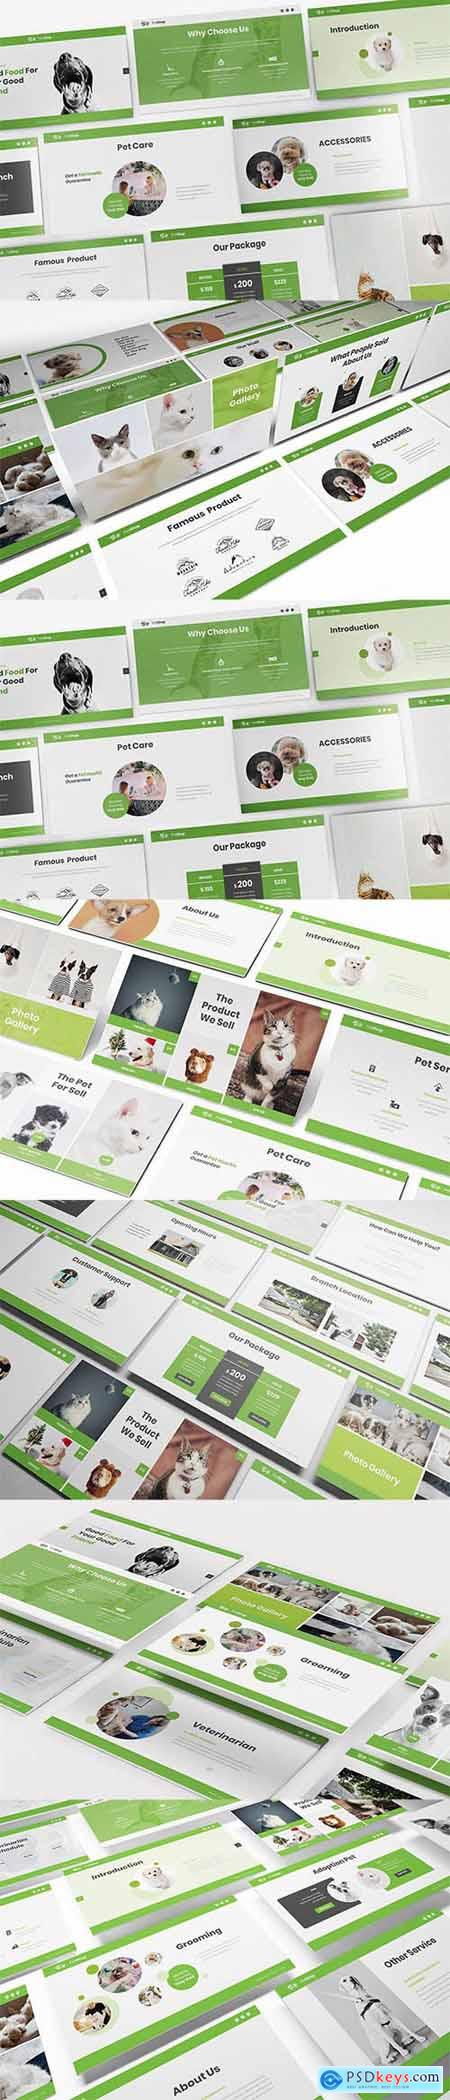 Pet Shop Powerpoint, Keynote and Google Slides Templates